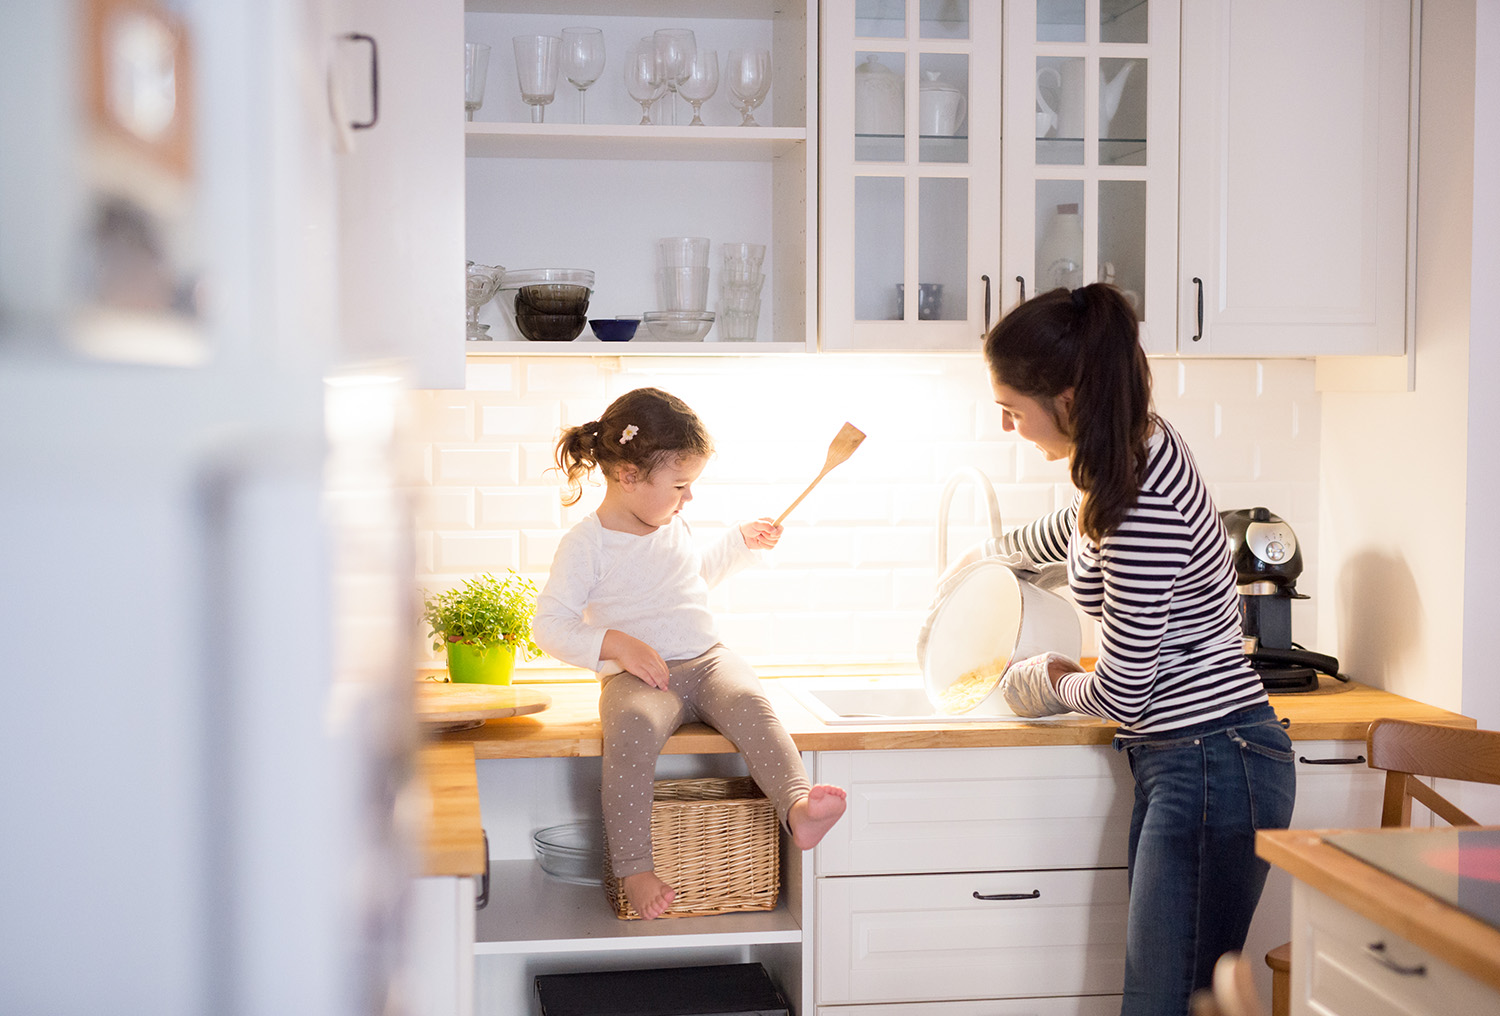 Mother and daughter making pasta in kitchen